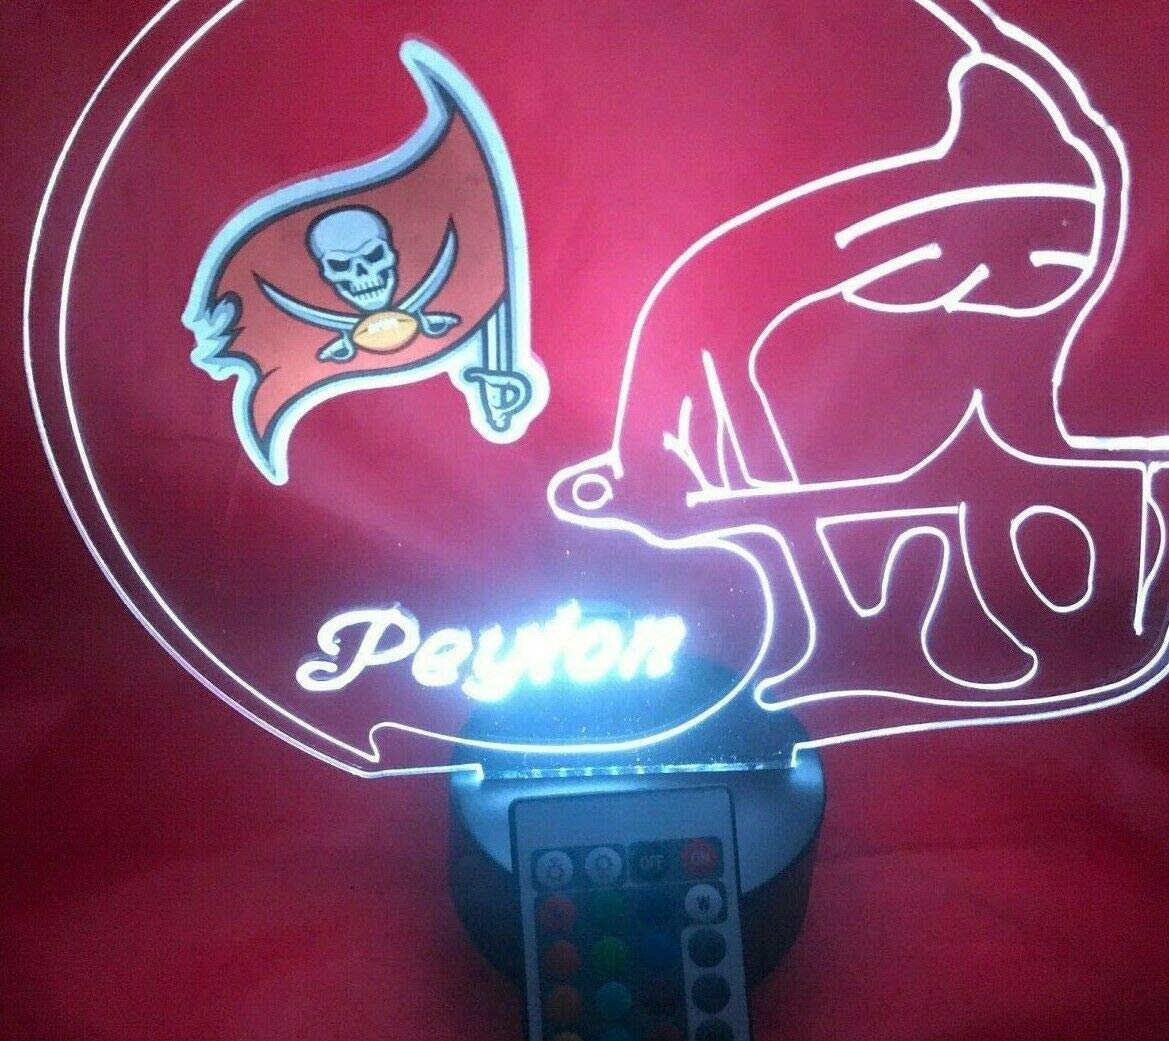 Tampa Bay Buccaneers NFL Light Lamp Light Up Hand Crafted Football Helmet Table Lamp LED with Remote, Personalized – It s Wow, with Remote 16 Color Options, Dimmer, Free Engraving, Great Gift